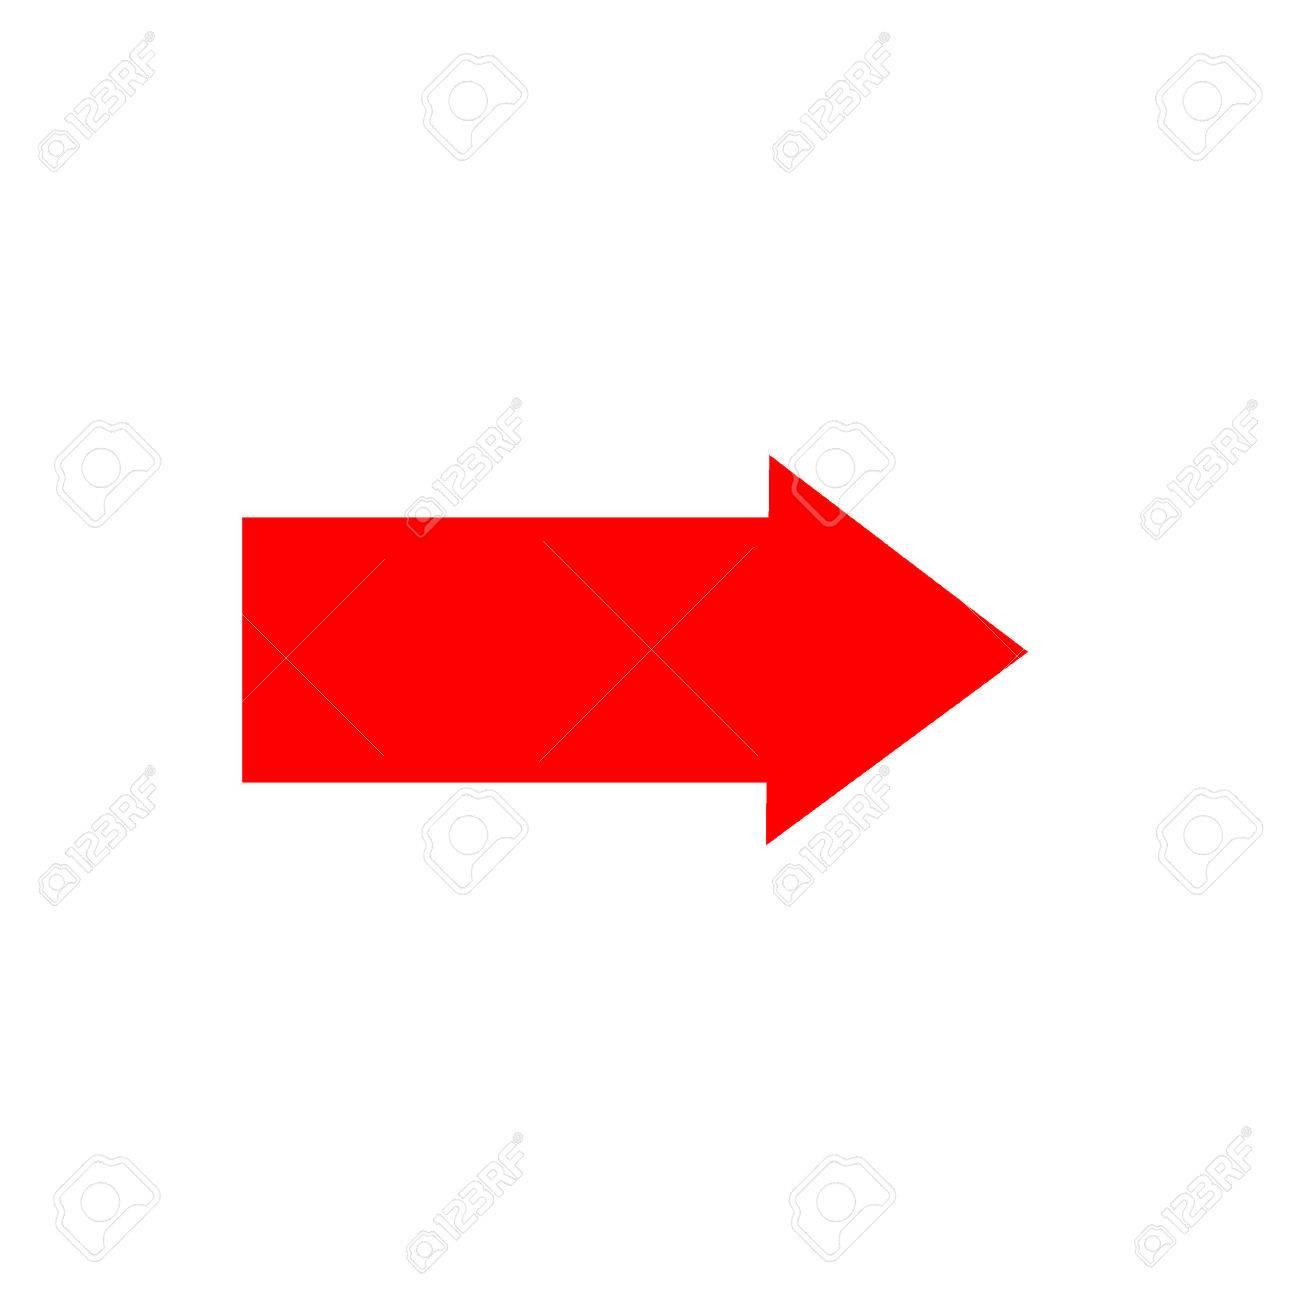 Arrow sign red icon isolated on white background .Vector to right symbol marks. Red sticker isolated on white background vector illustration. Flat vector image. Vector illustration. - 59072026